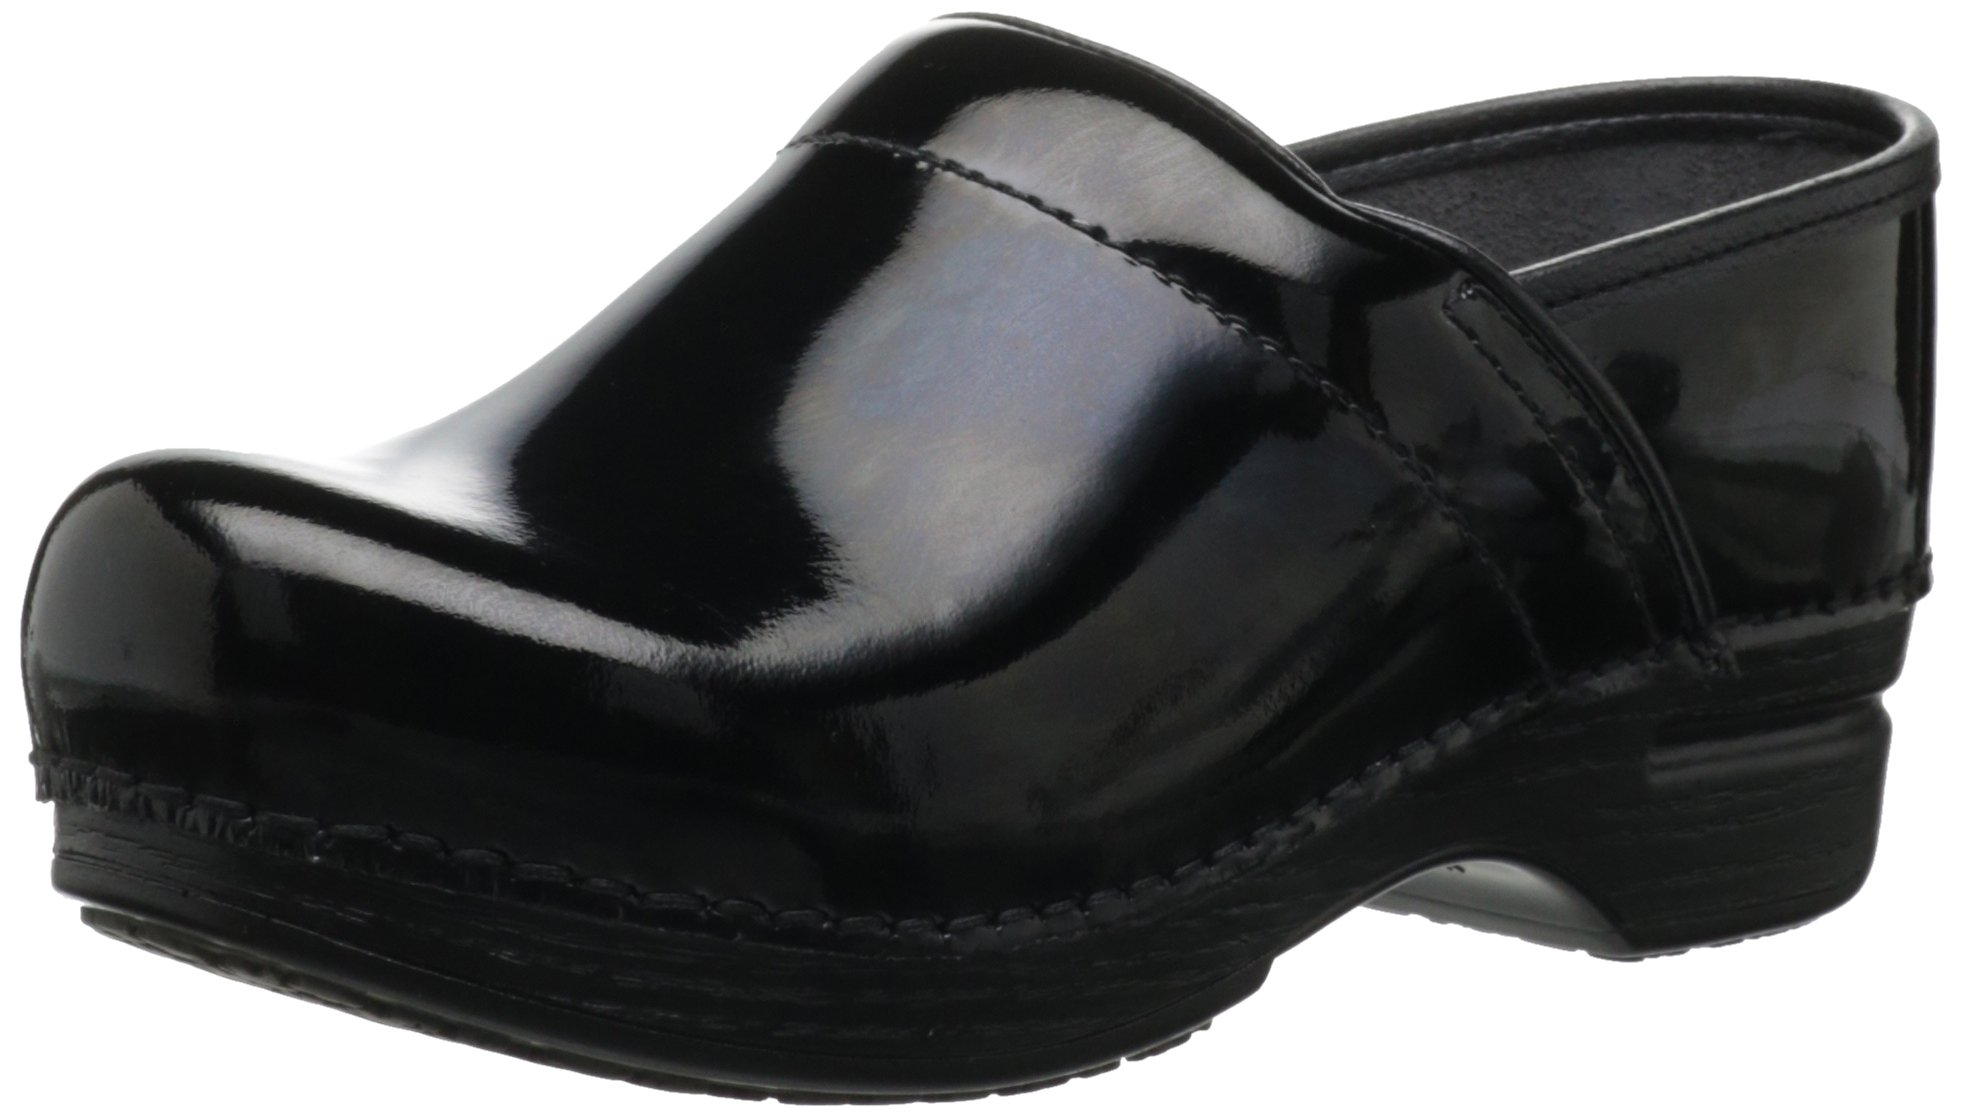 Dansko Women's Wide Pro XP Clog,Black Patent,39 EU/8.5-9 W US